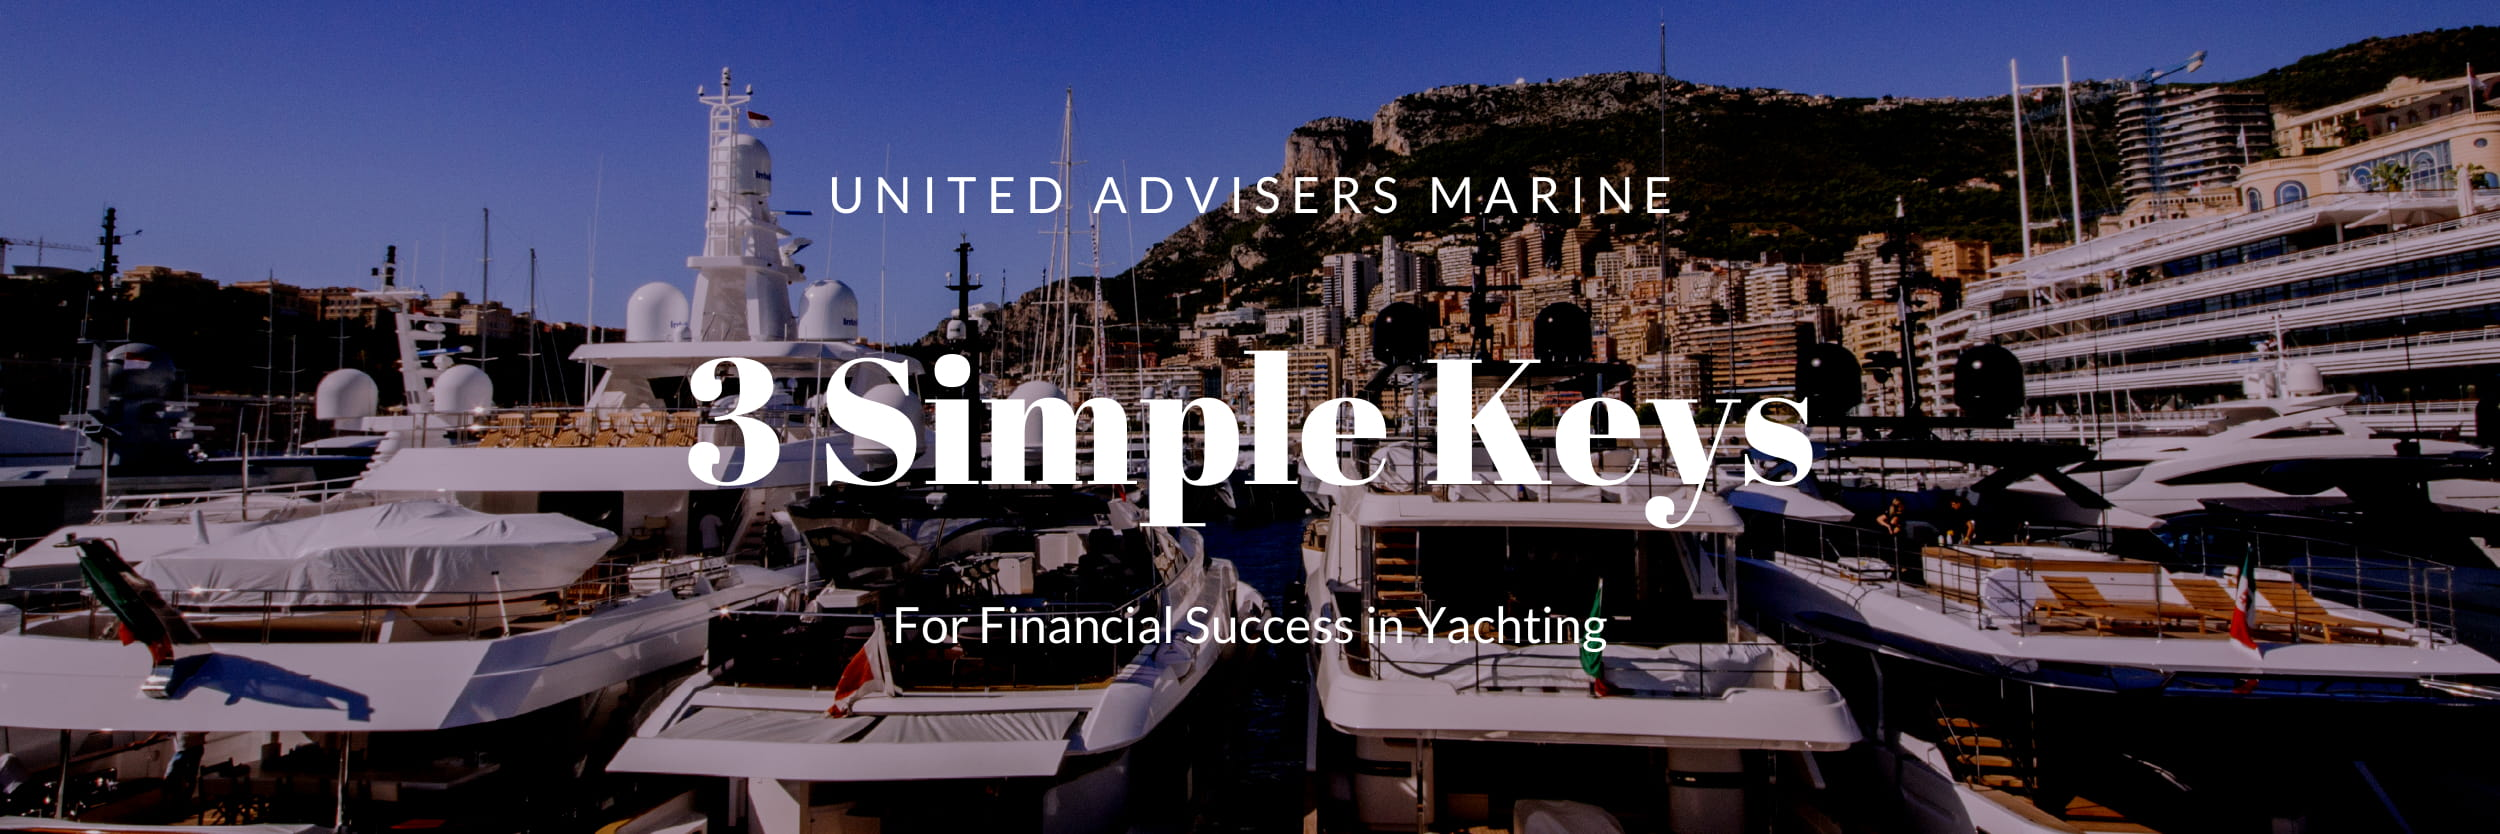 Three simple Keys for Financial Success in Yachting